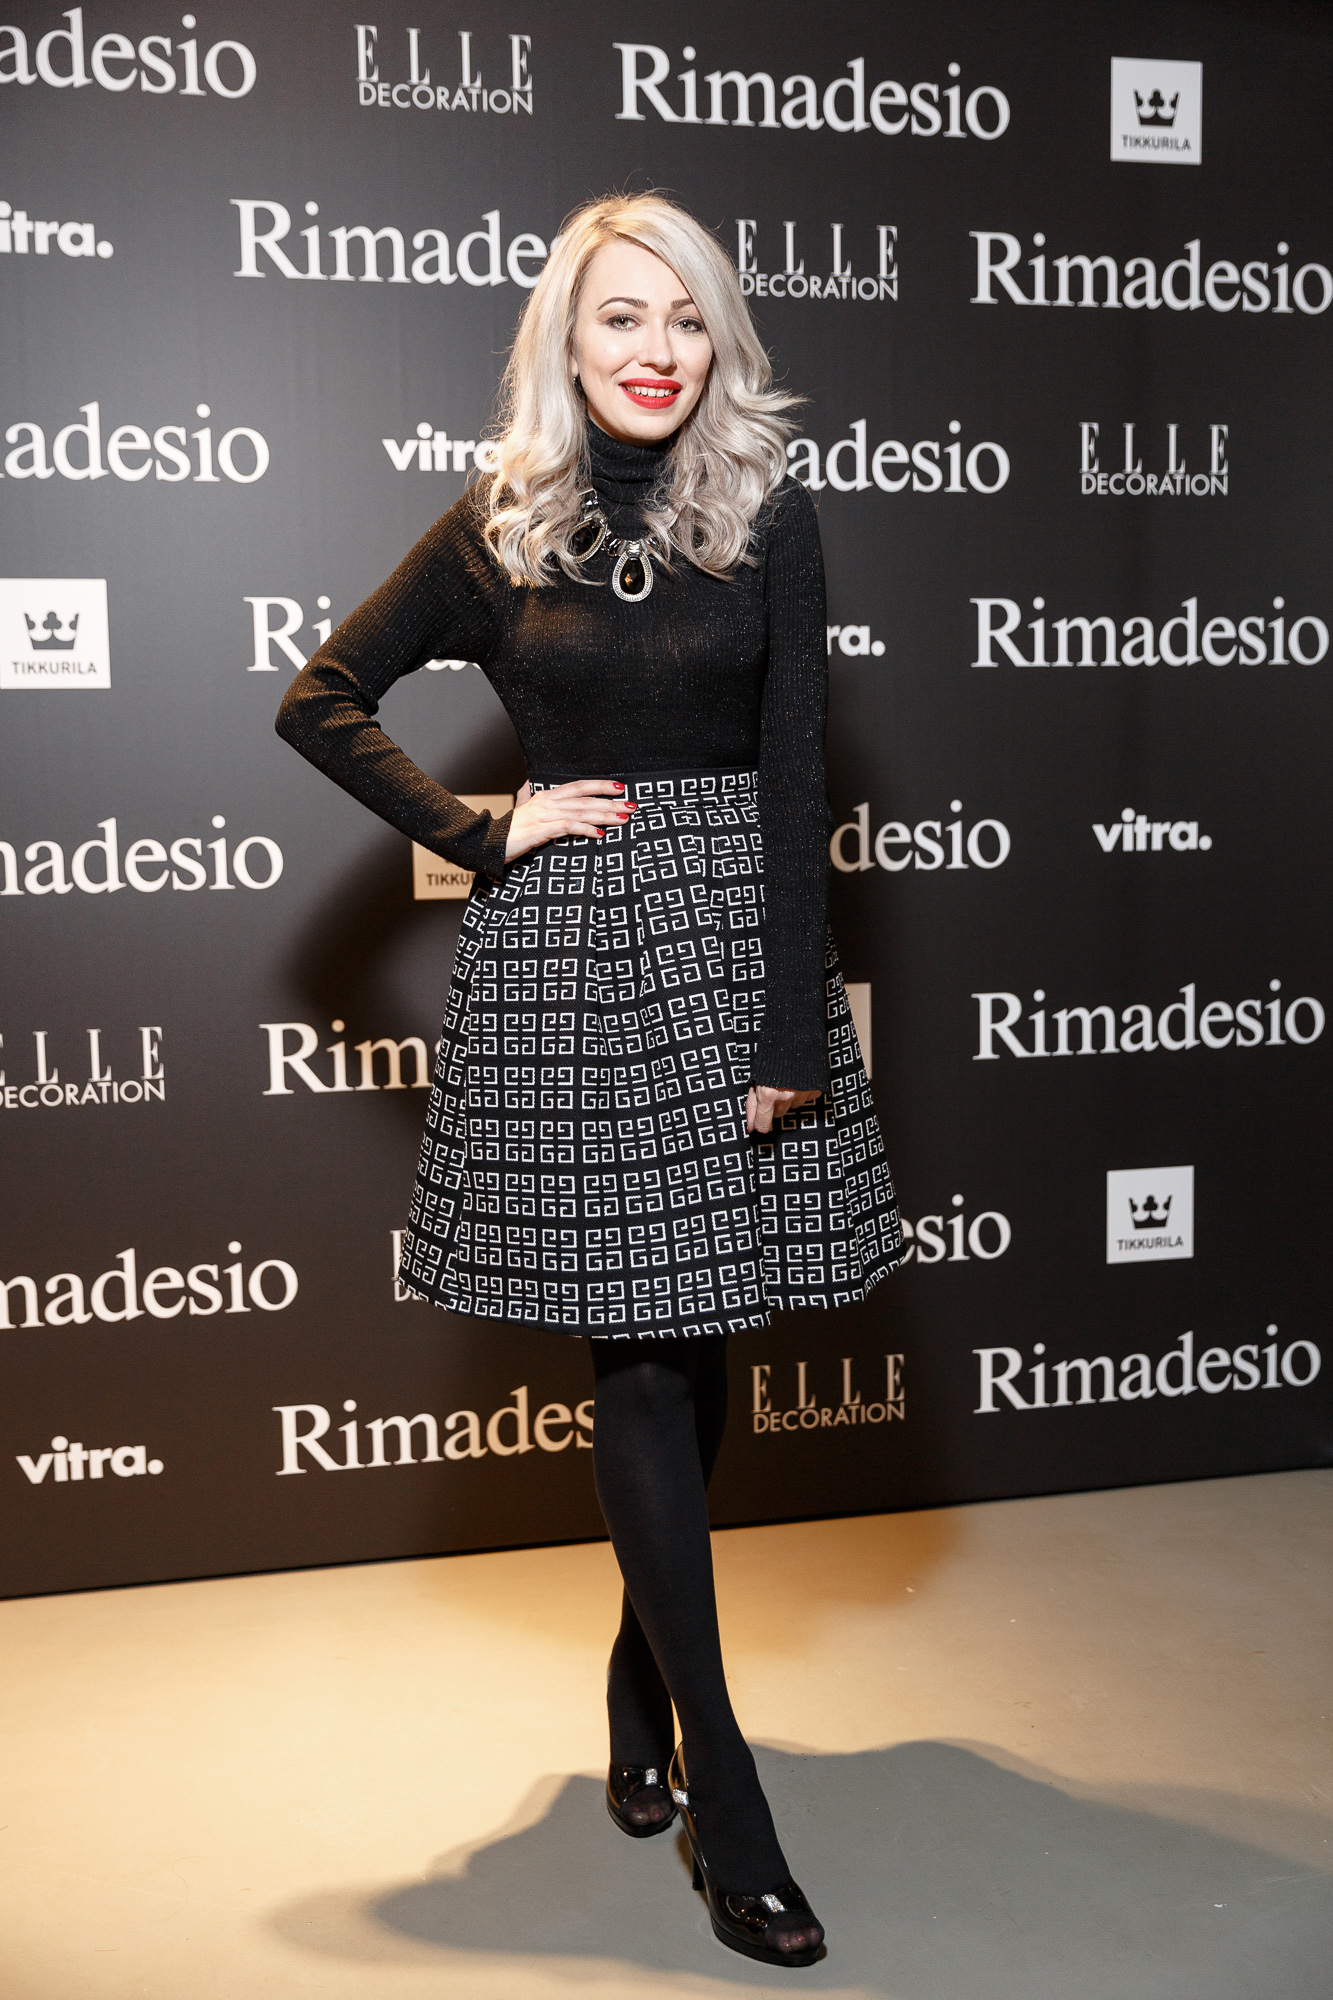 rimadesio-moscow-155